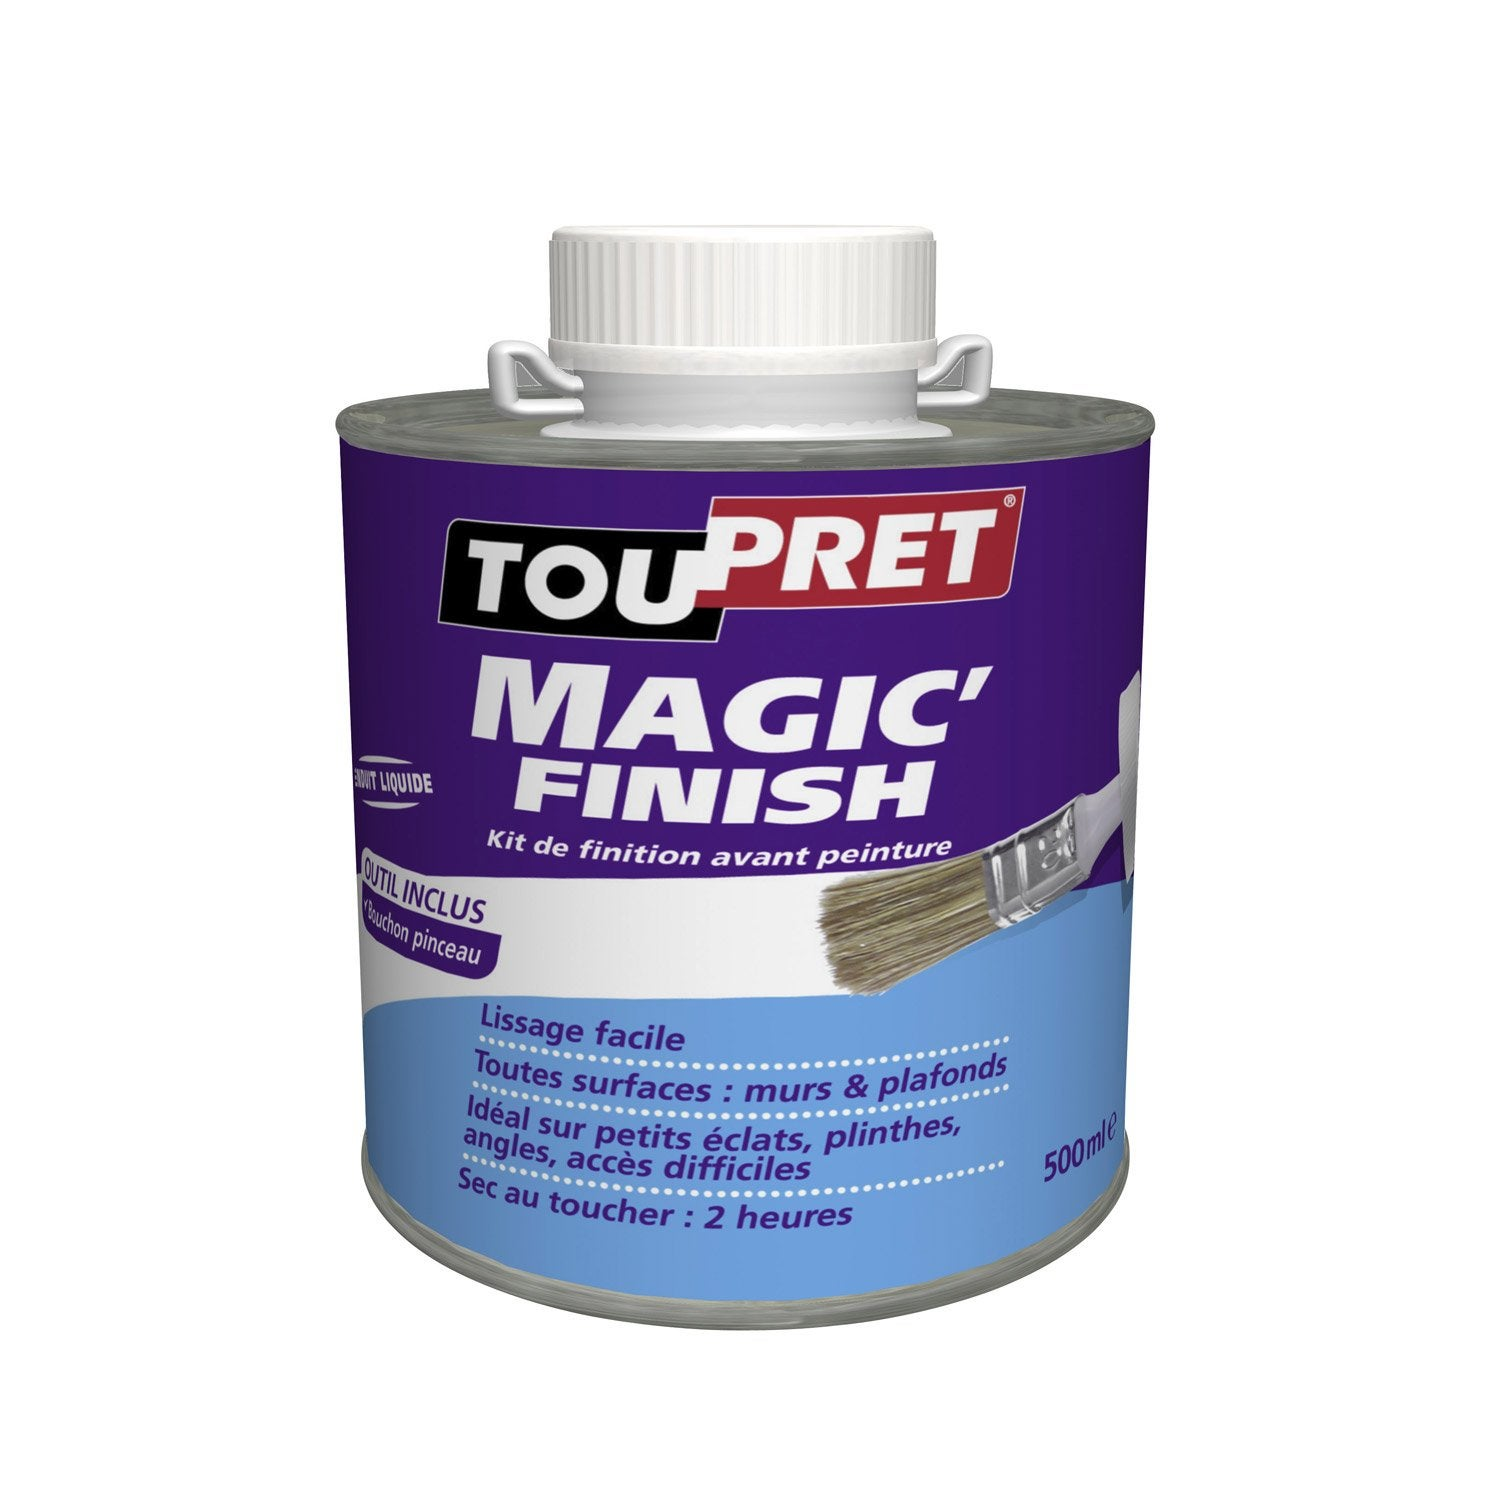 Enduit de lissage p te magic finish blanc toupret leroy merlin - Prix pellets leroy merlin ...